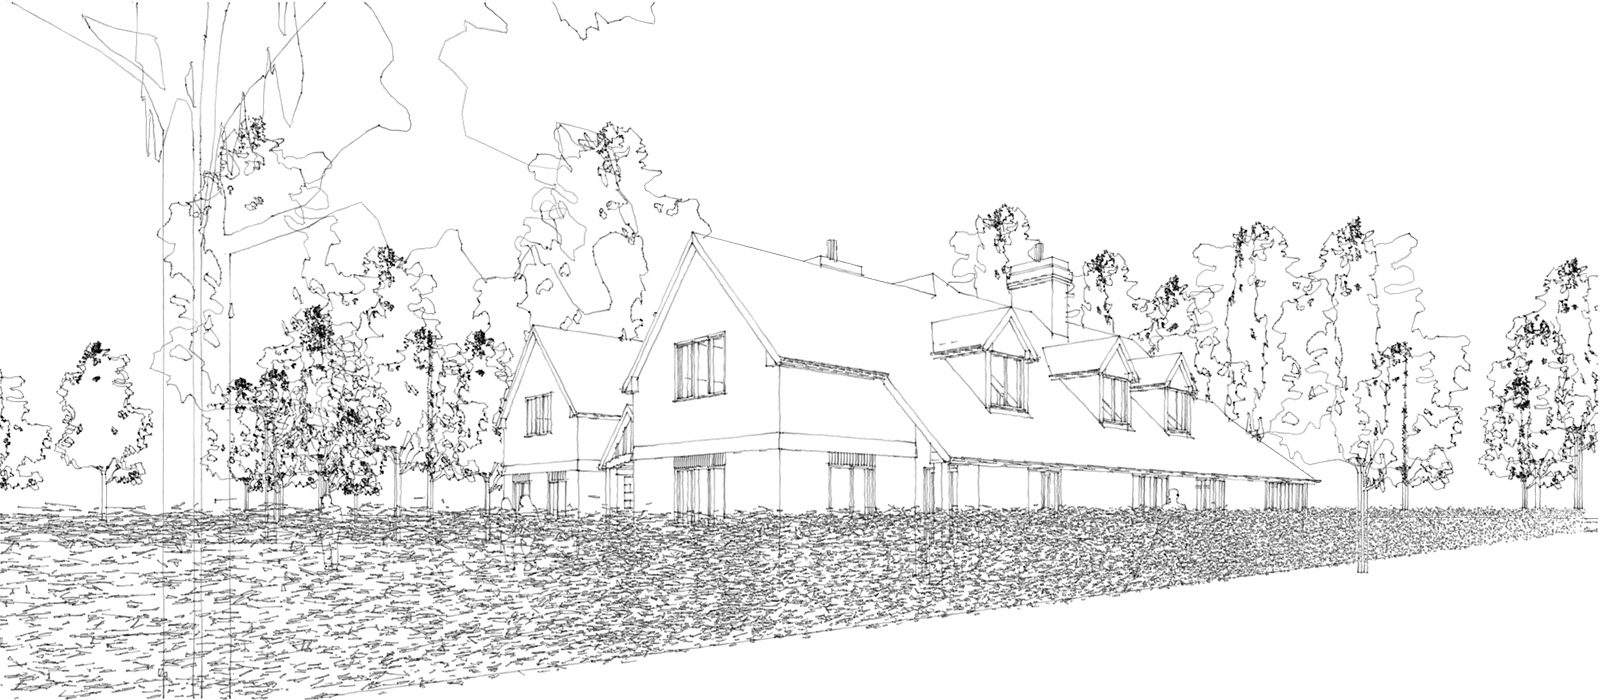 gyd-architecture | Sketch render of approved planning drawings